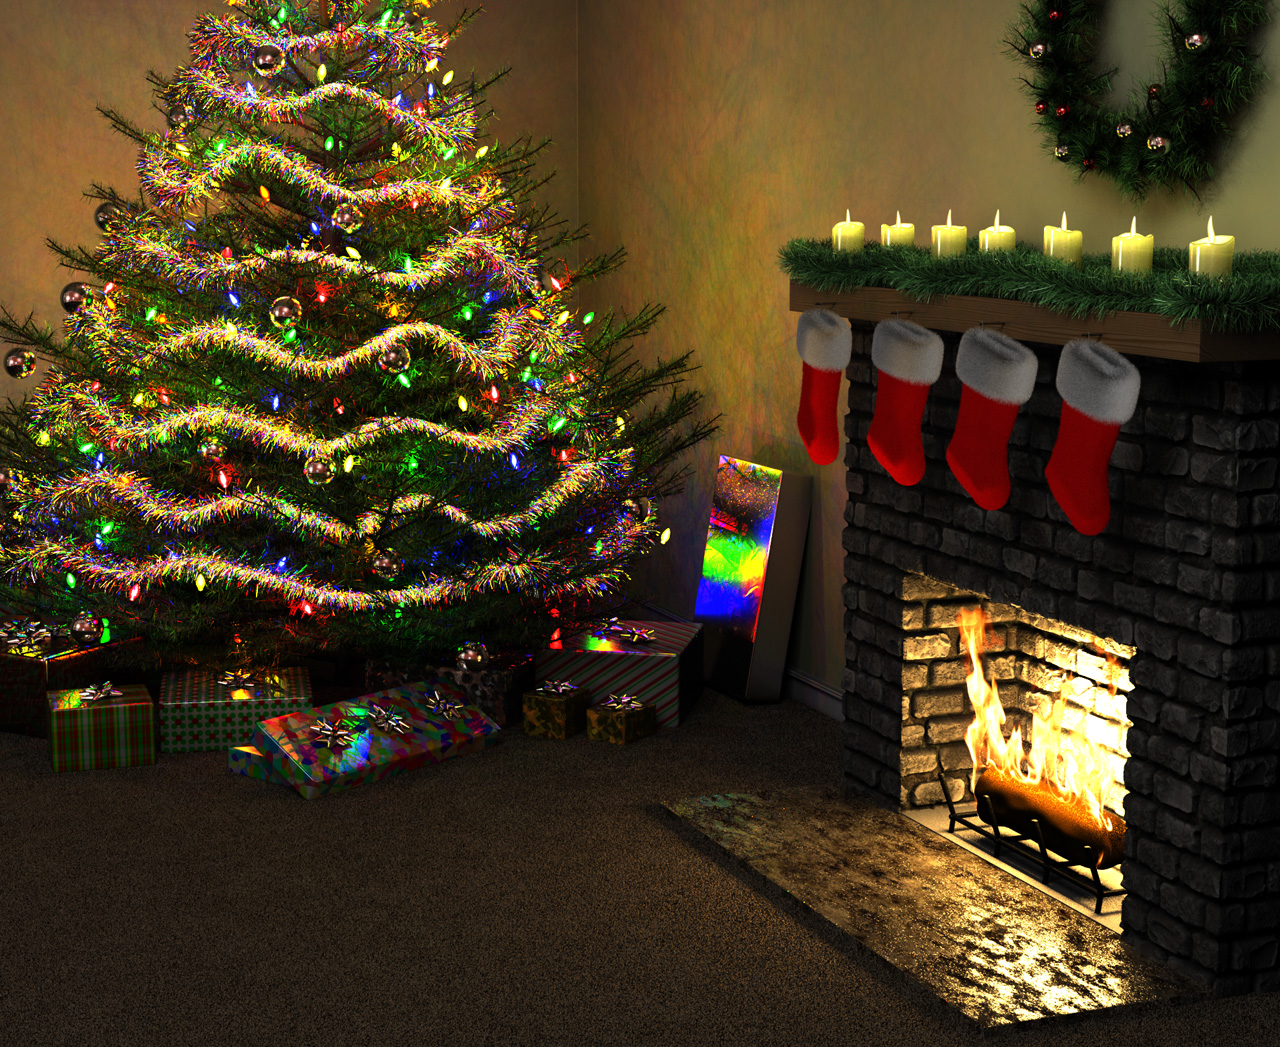 Christmas Tree, Presents, Stockings... | Foundry Community